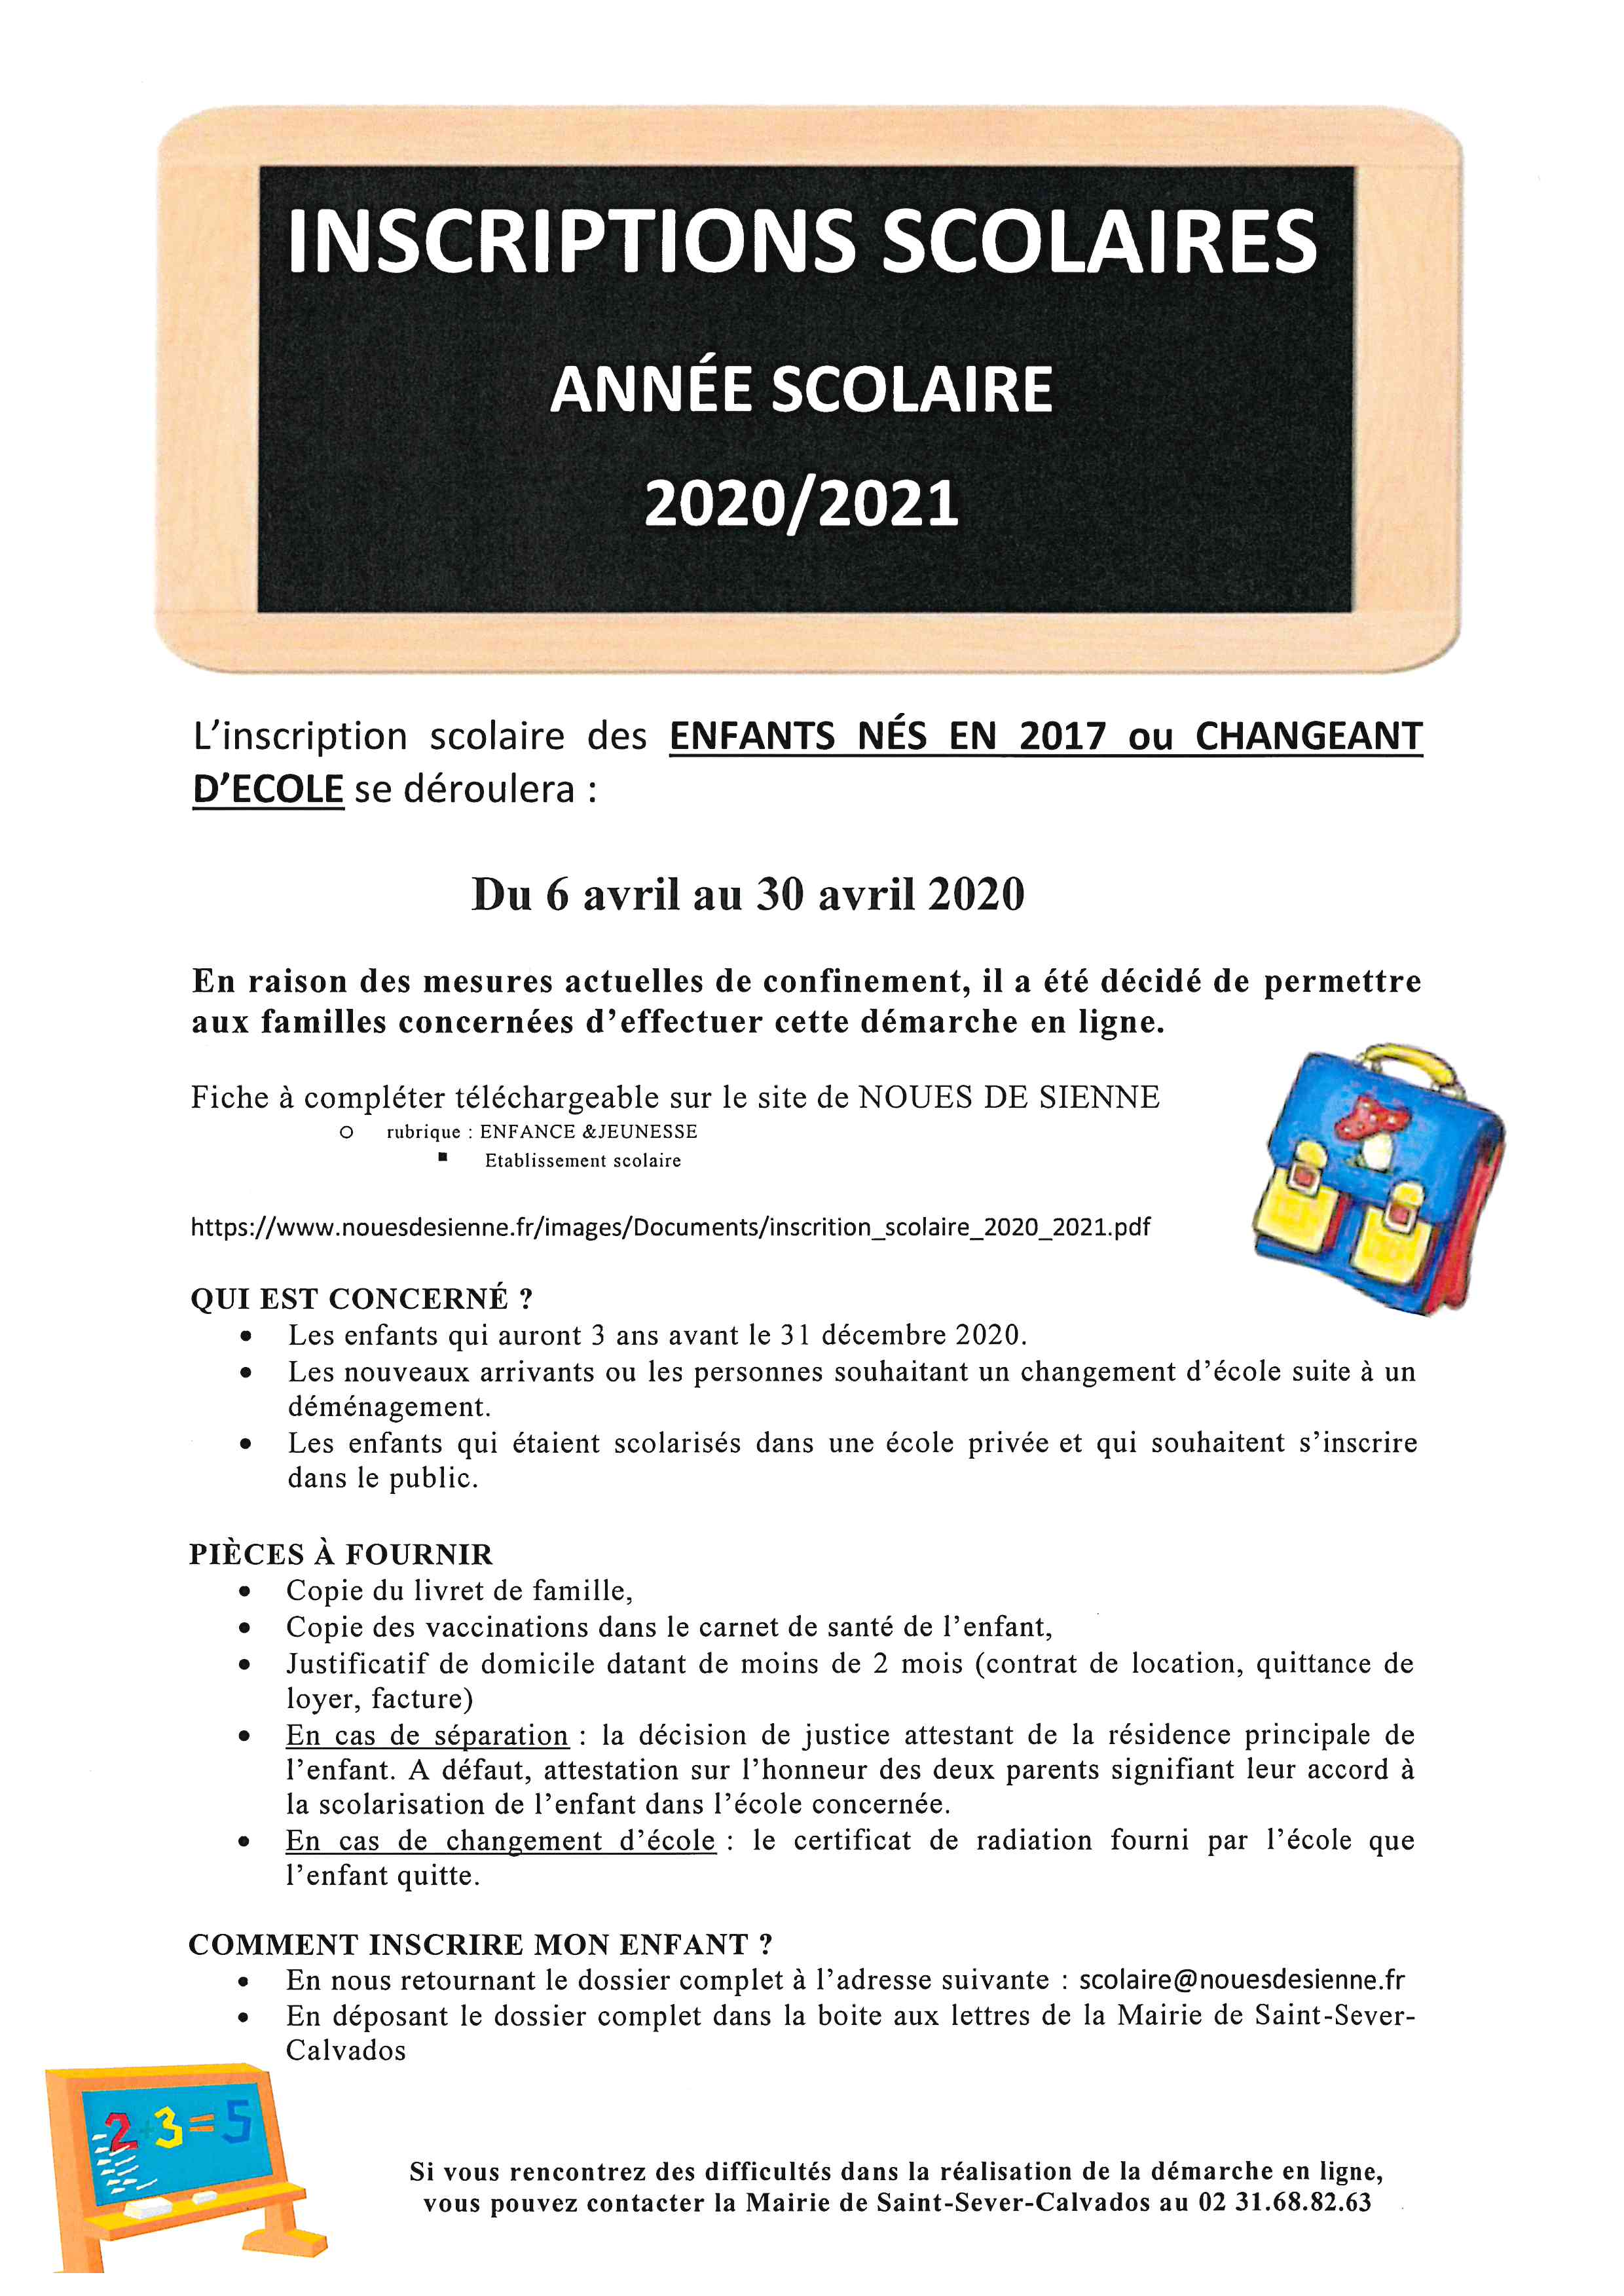 inscription scolaire 2020 21